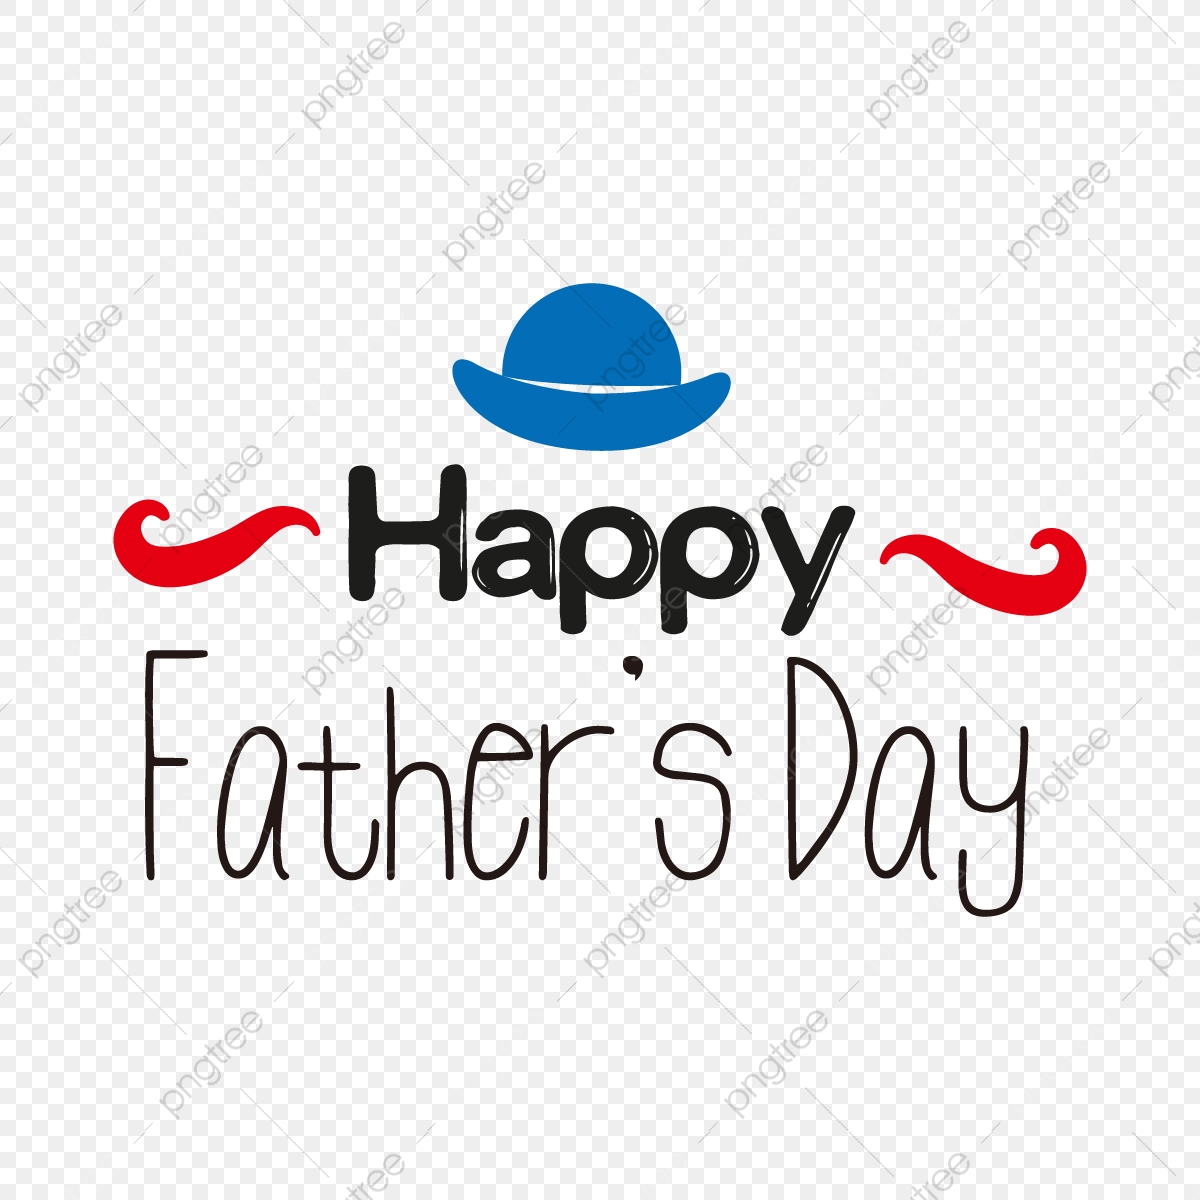 Free These free father's day svg cutting files are great to add a little humor to your gift for him. Svg Black Cartoon Happy Fathers Day English Alphabet Hat Illustration Font Effect Eps For Free Download SVG, PNG, EPS, DXF File